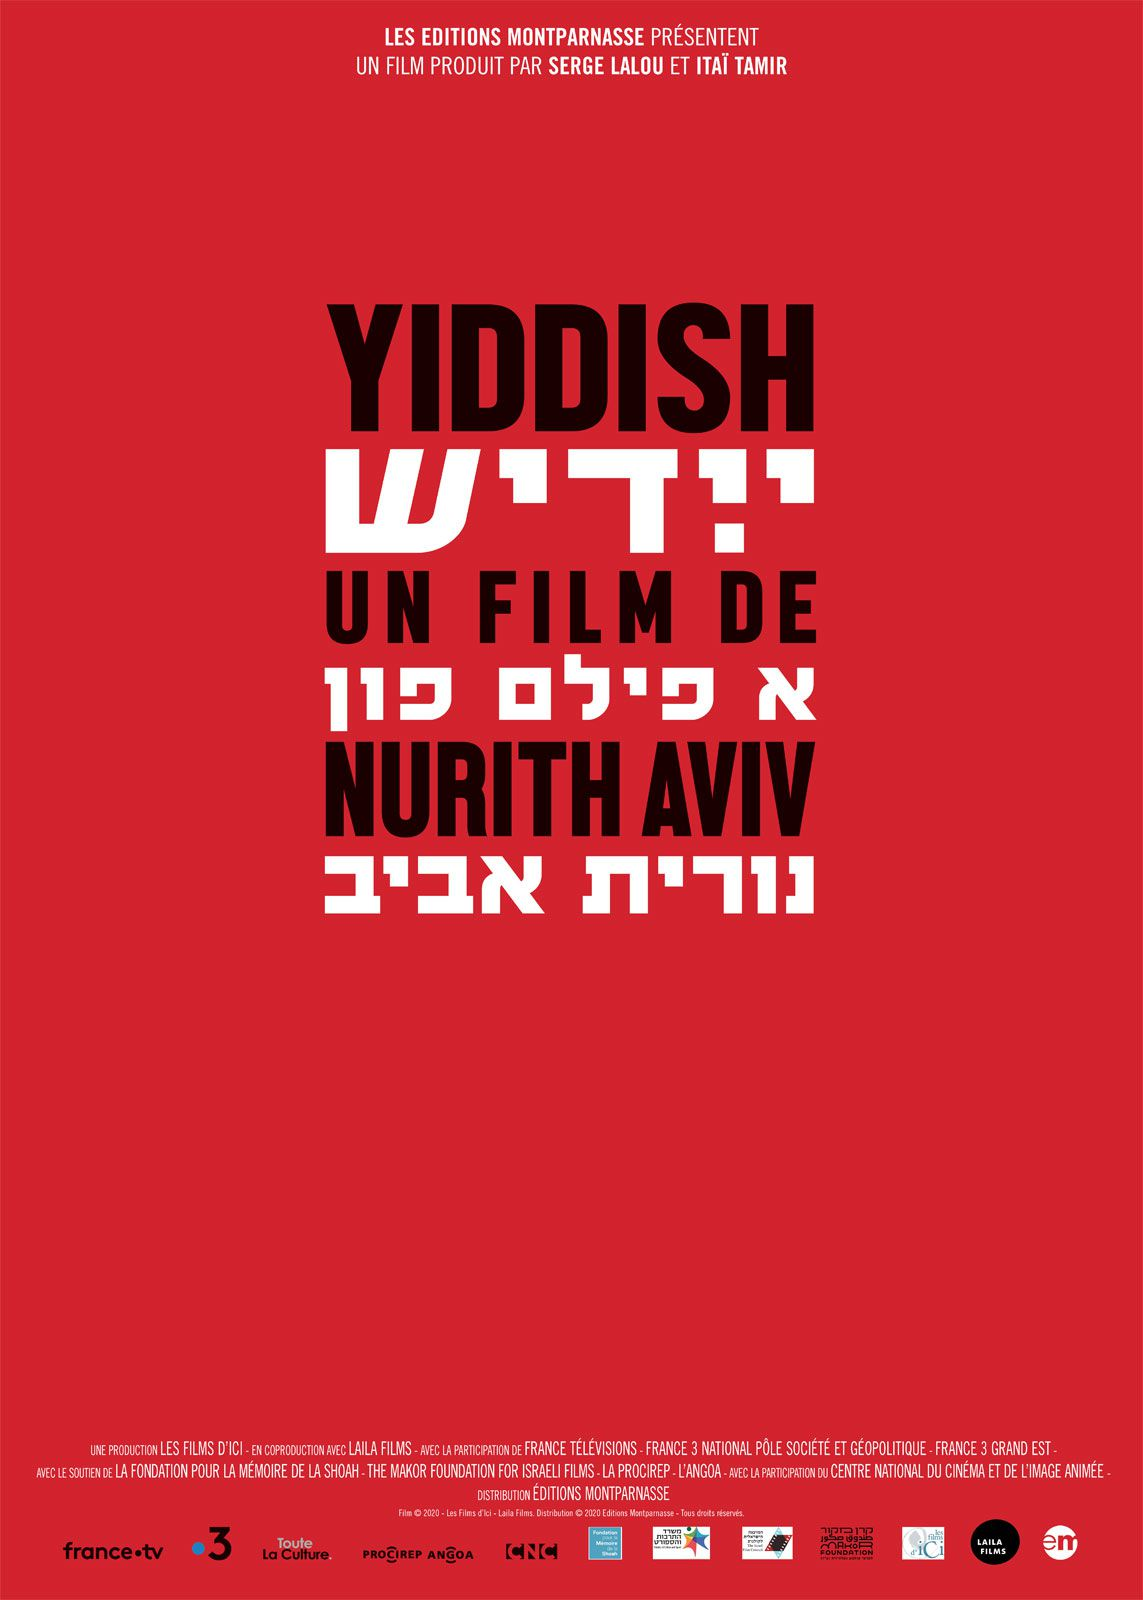 Film Yiddish - Documentaire (2020)